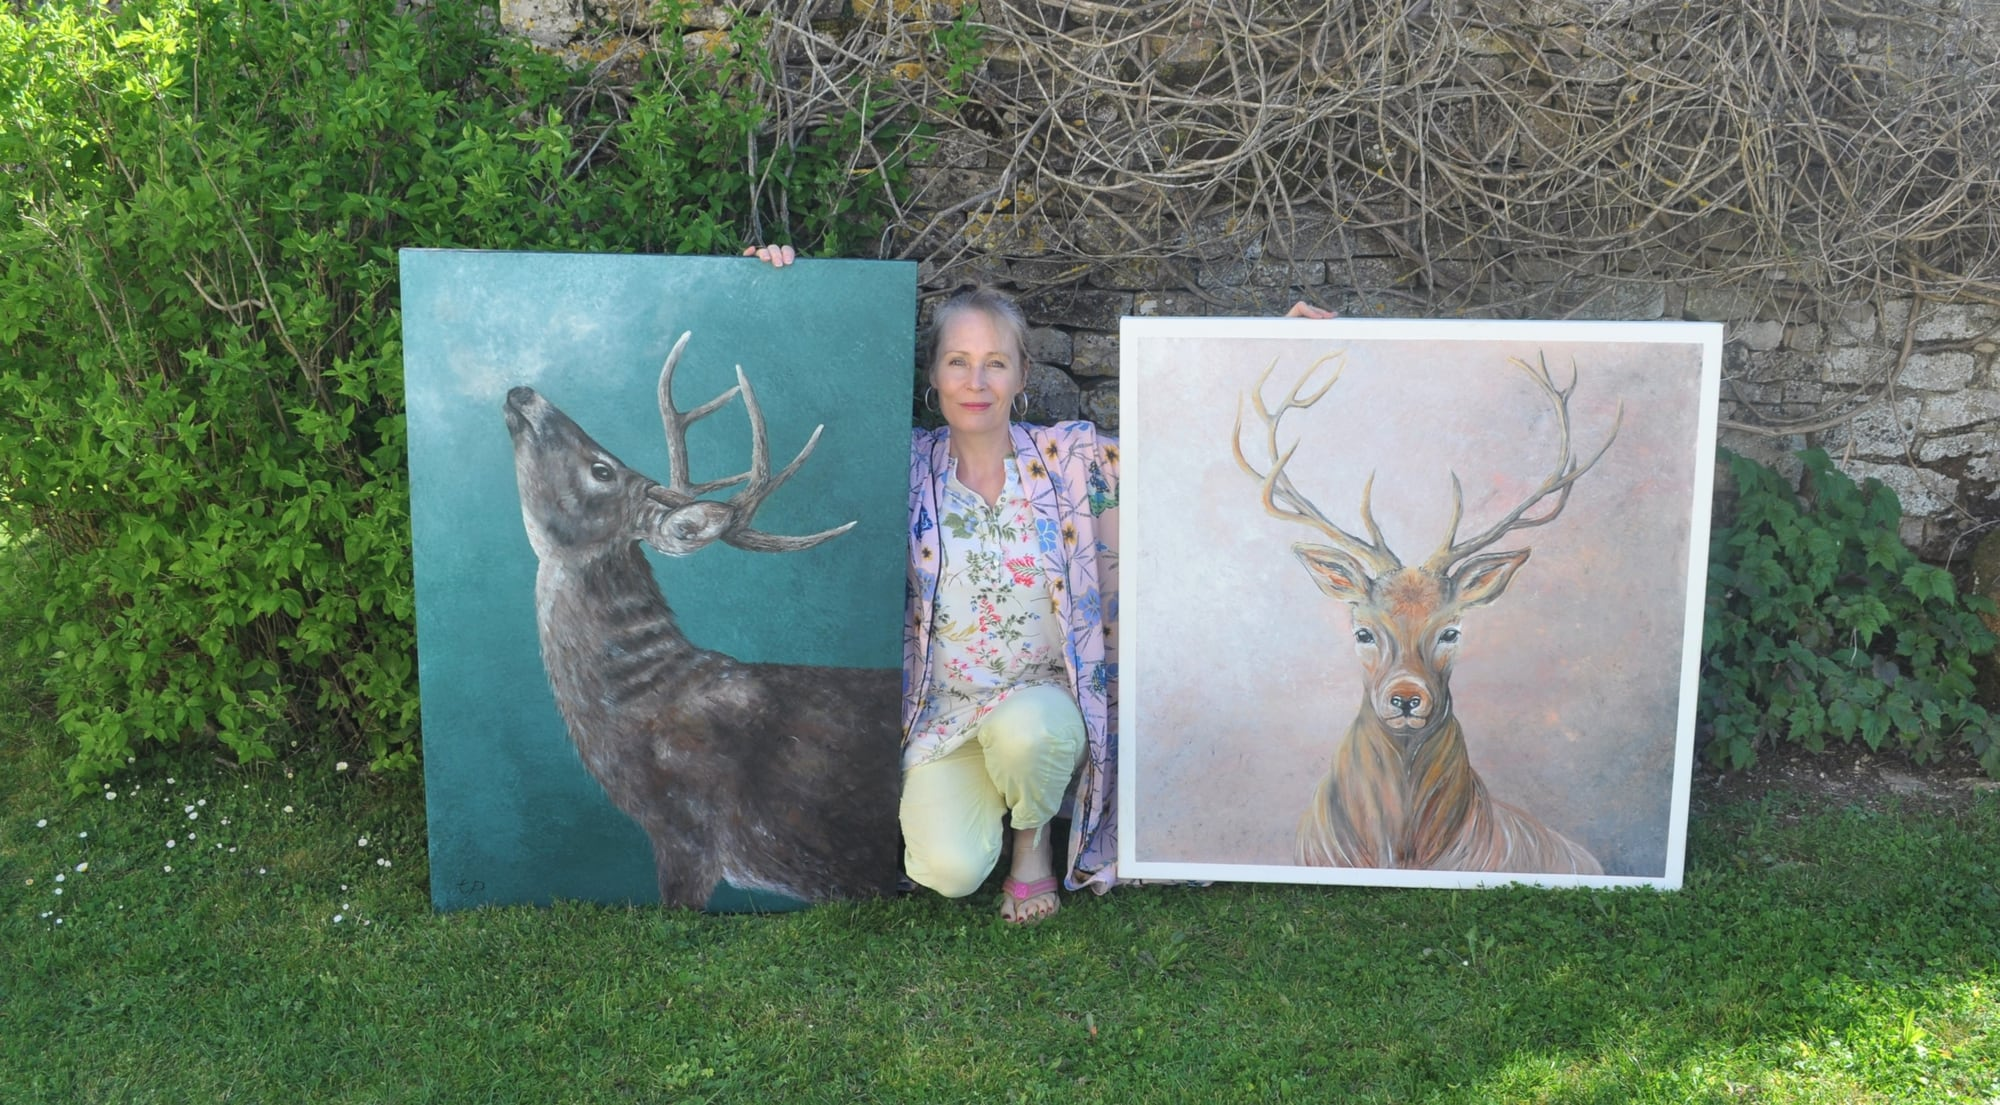 Yogini and contemporary artist Tandy Pengelly